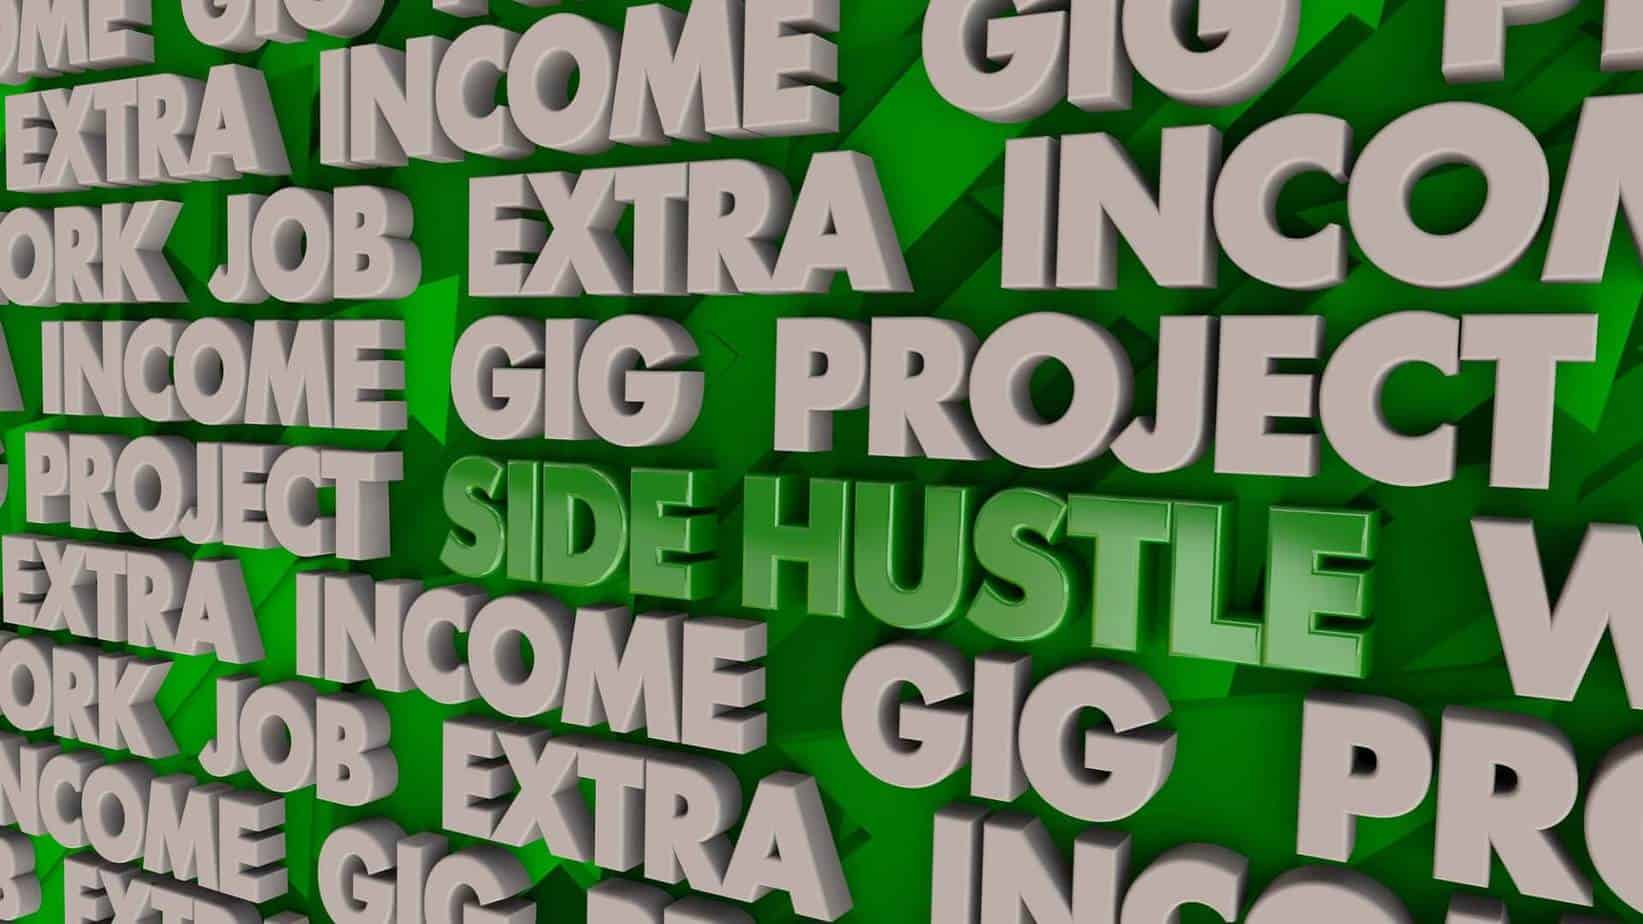 Top 10 Side Hustles To Make An Extra $1,000 a Month